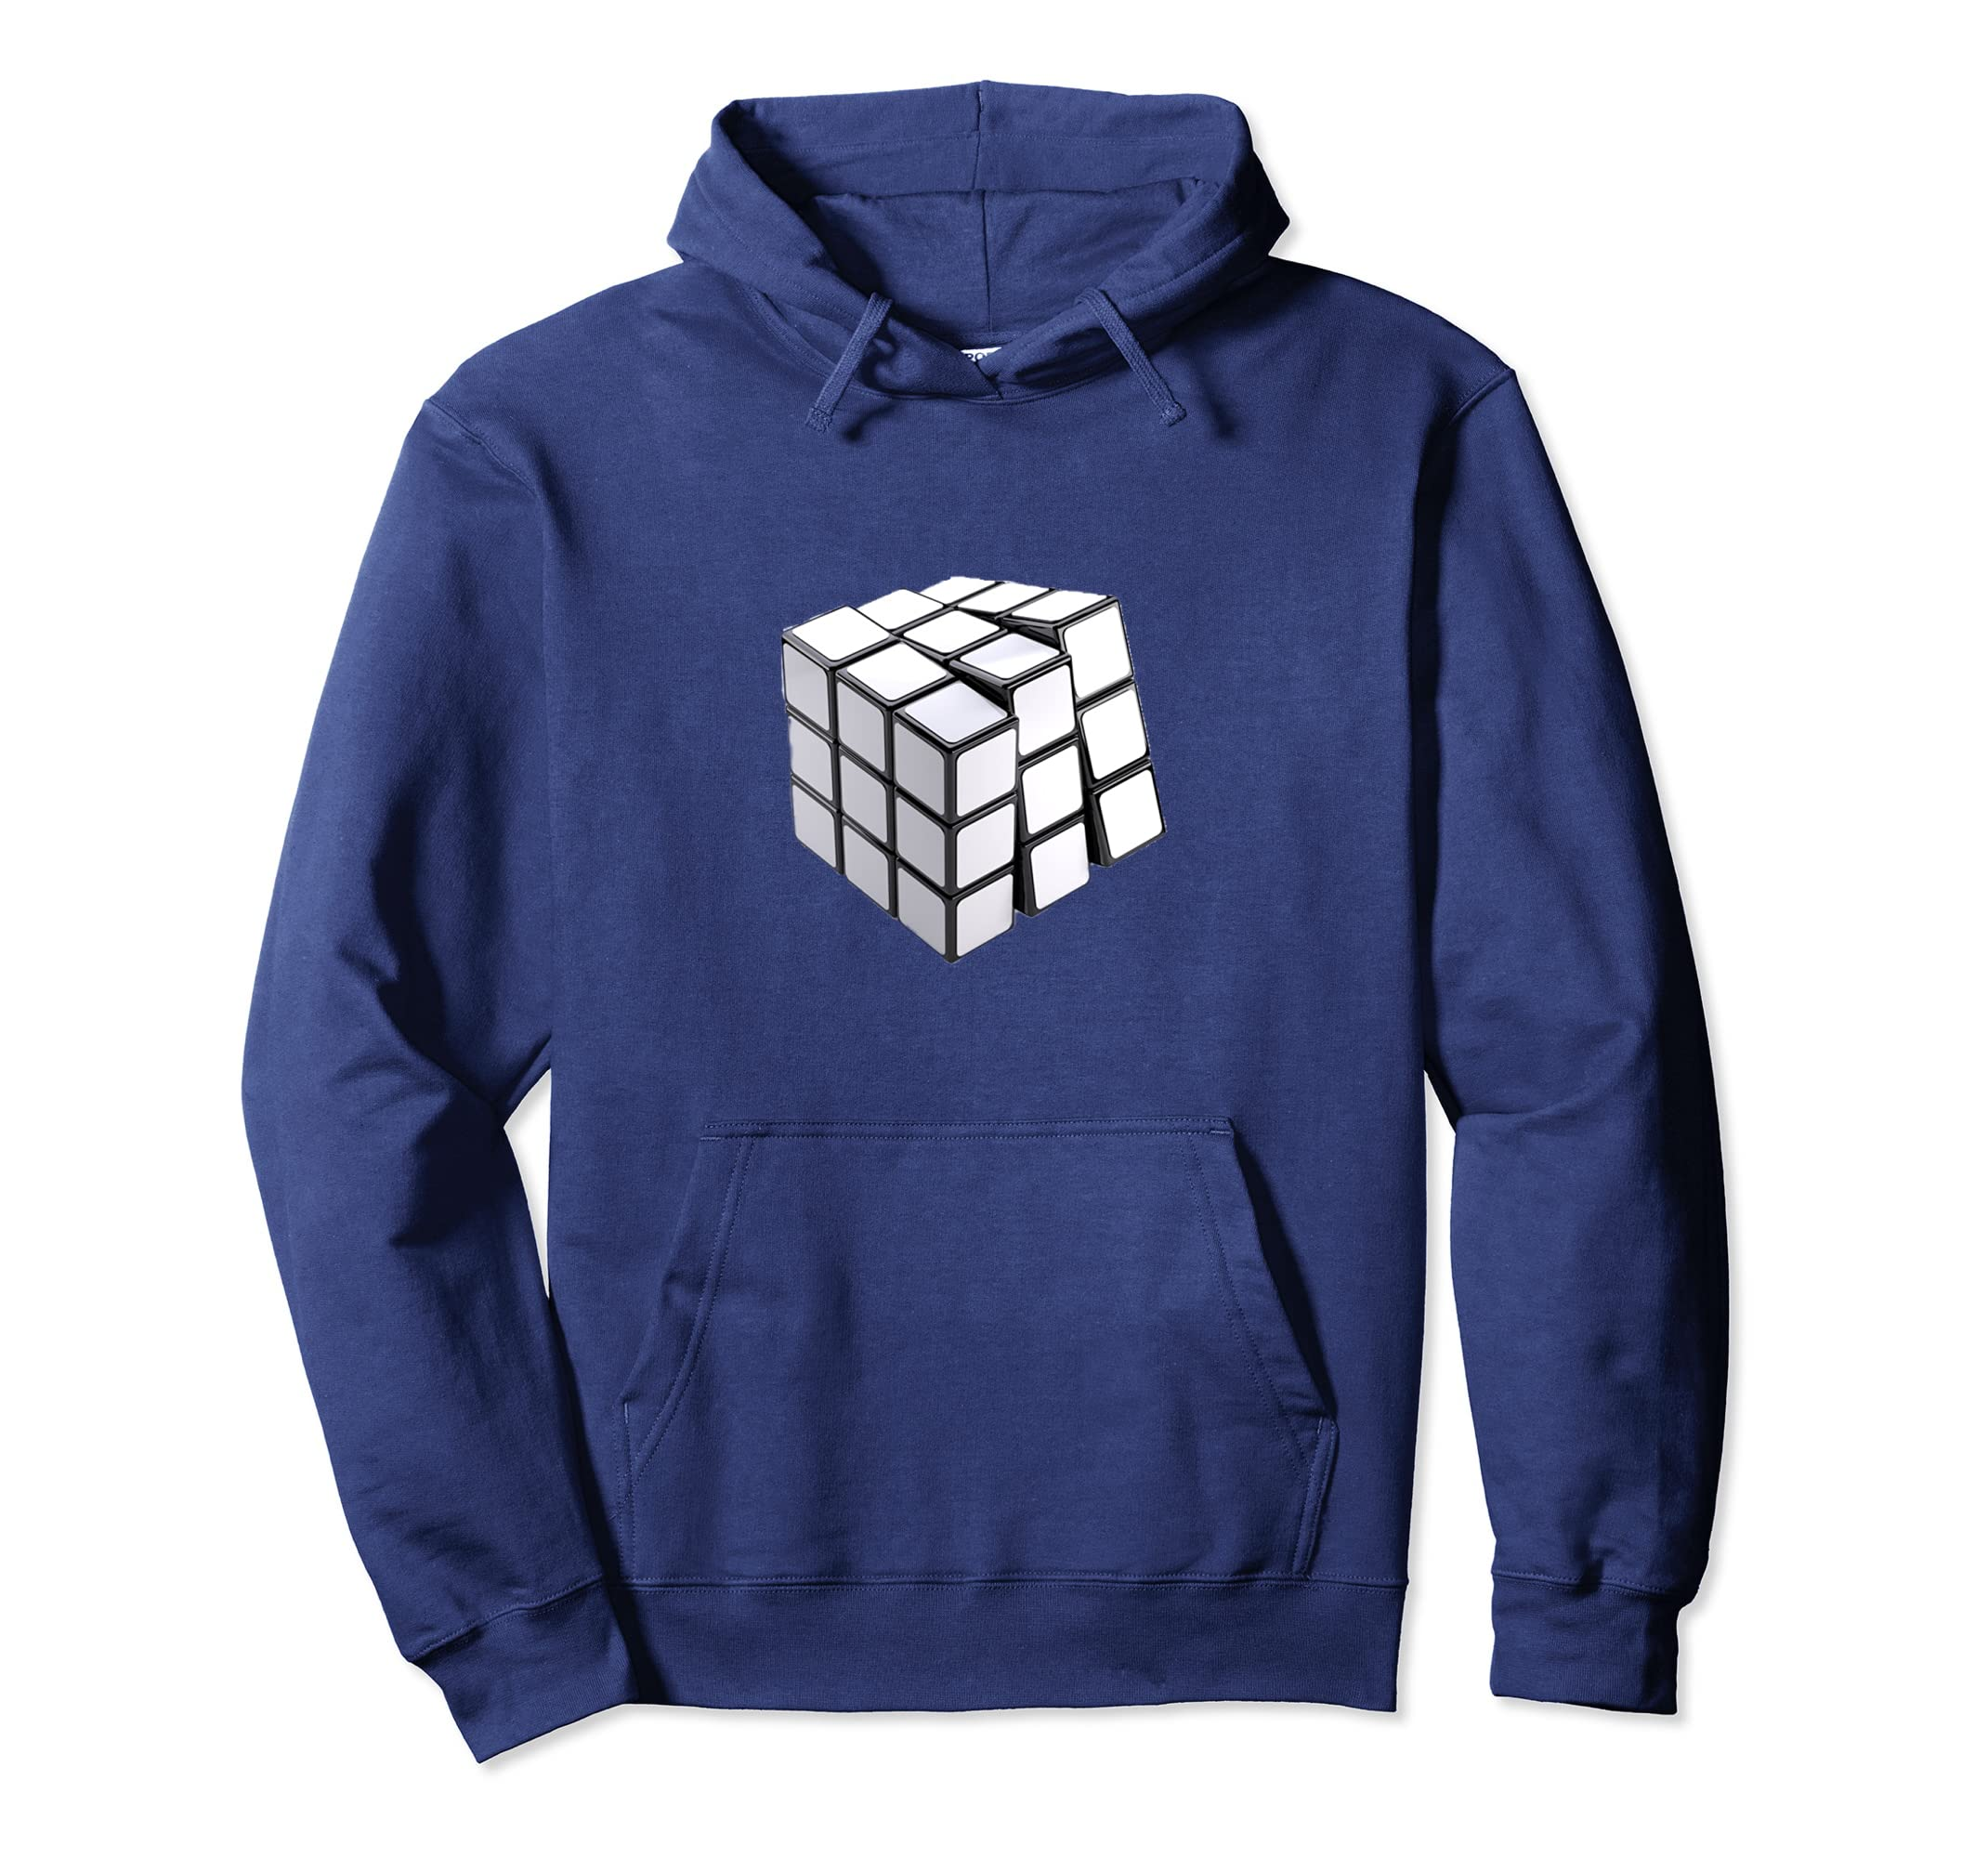 Rubiks White Cube Adult Hoodie,Maths Solver Costume For all-Teechatpro